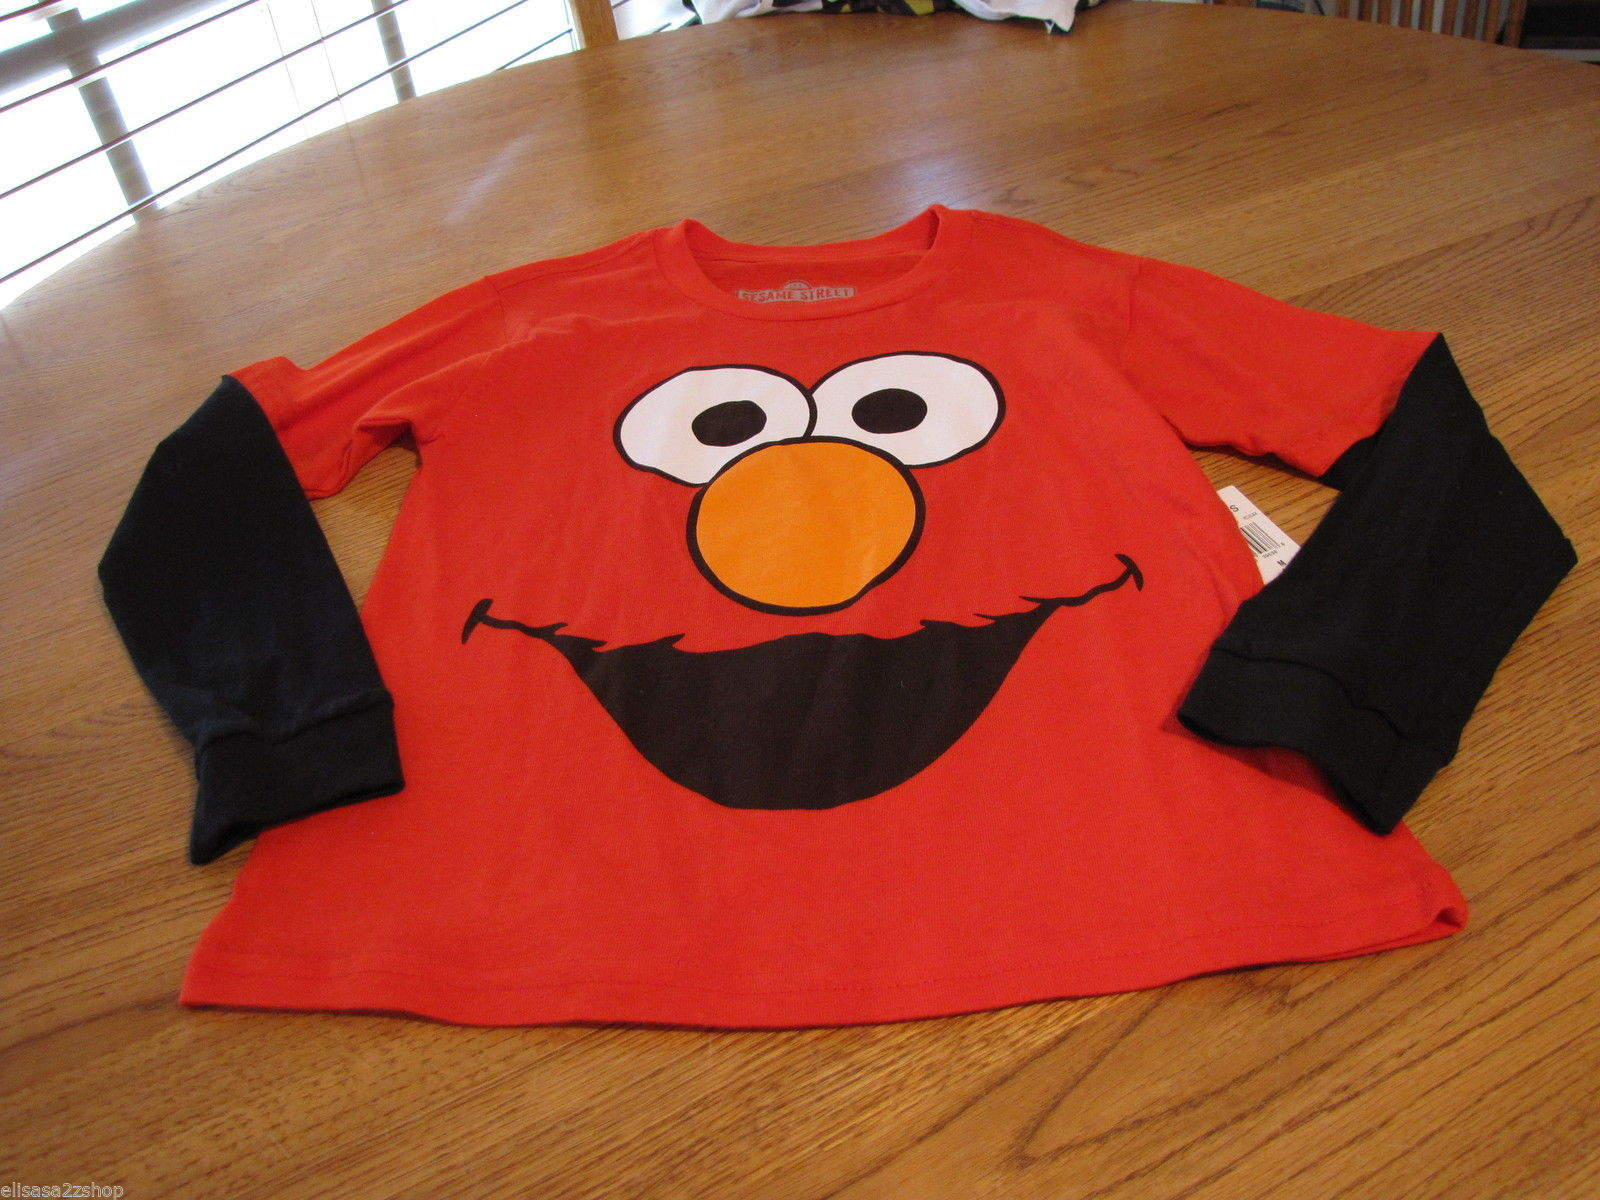 Boy's Sesame Street Elmo red T shirt youth NEW longsleeve large L LG $24 NWT